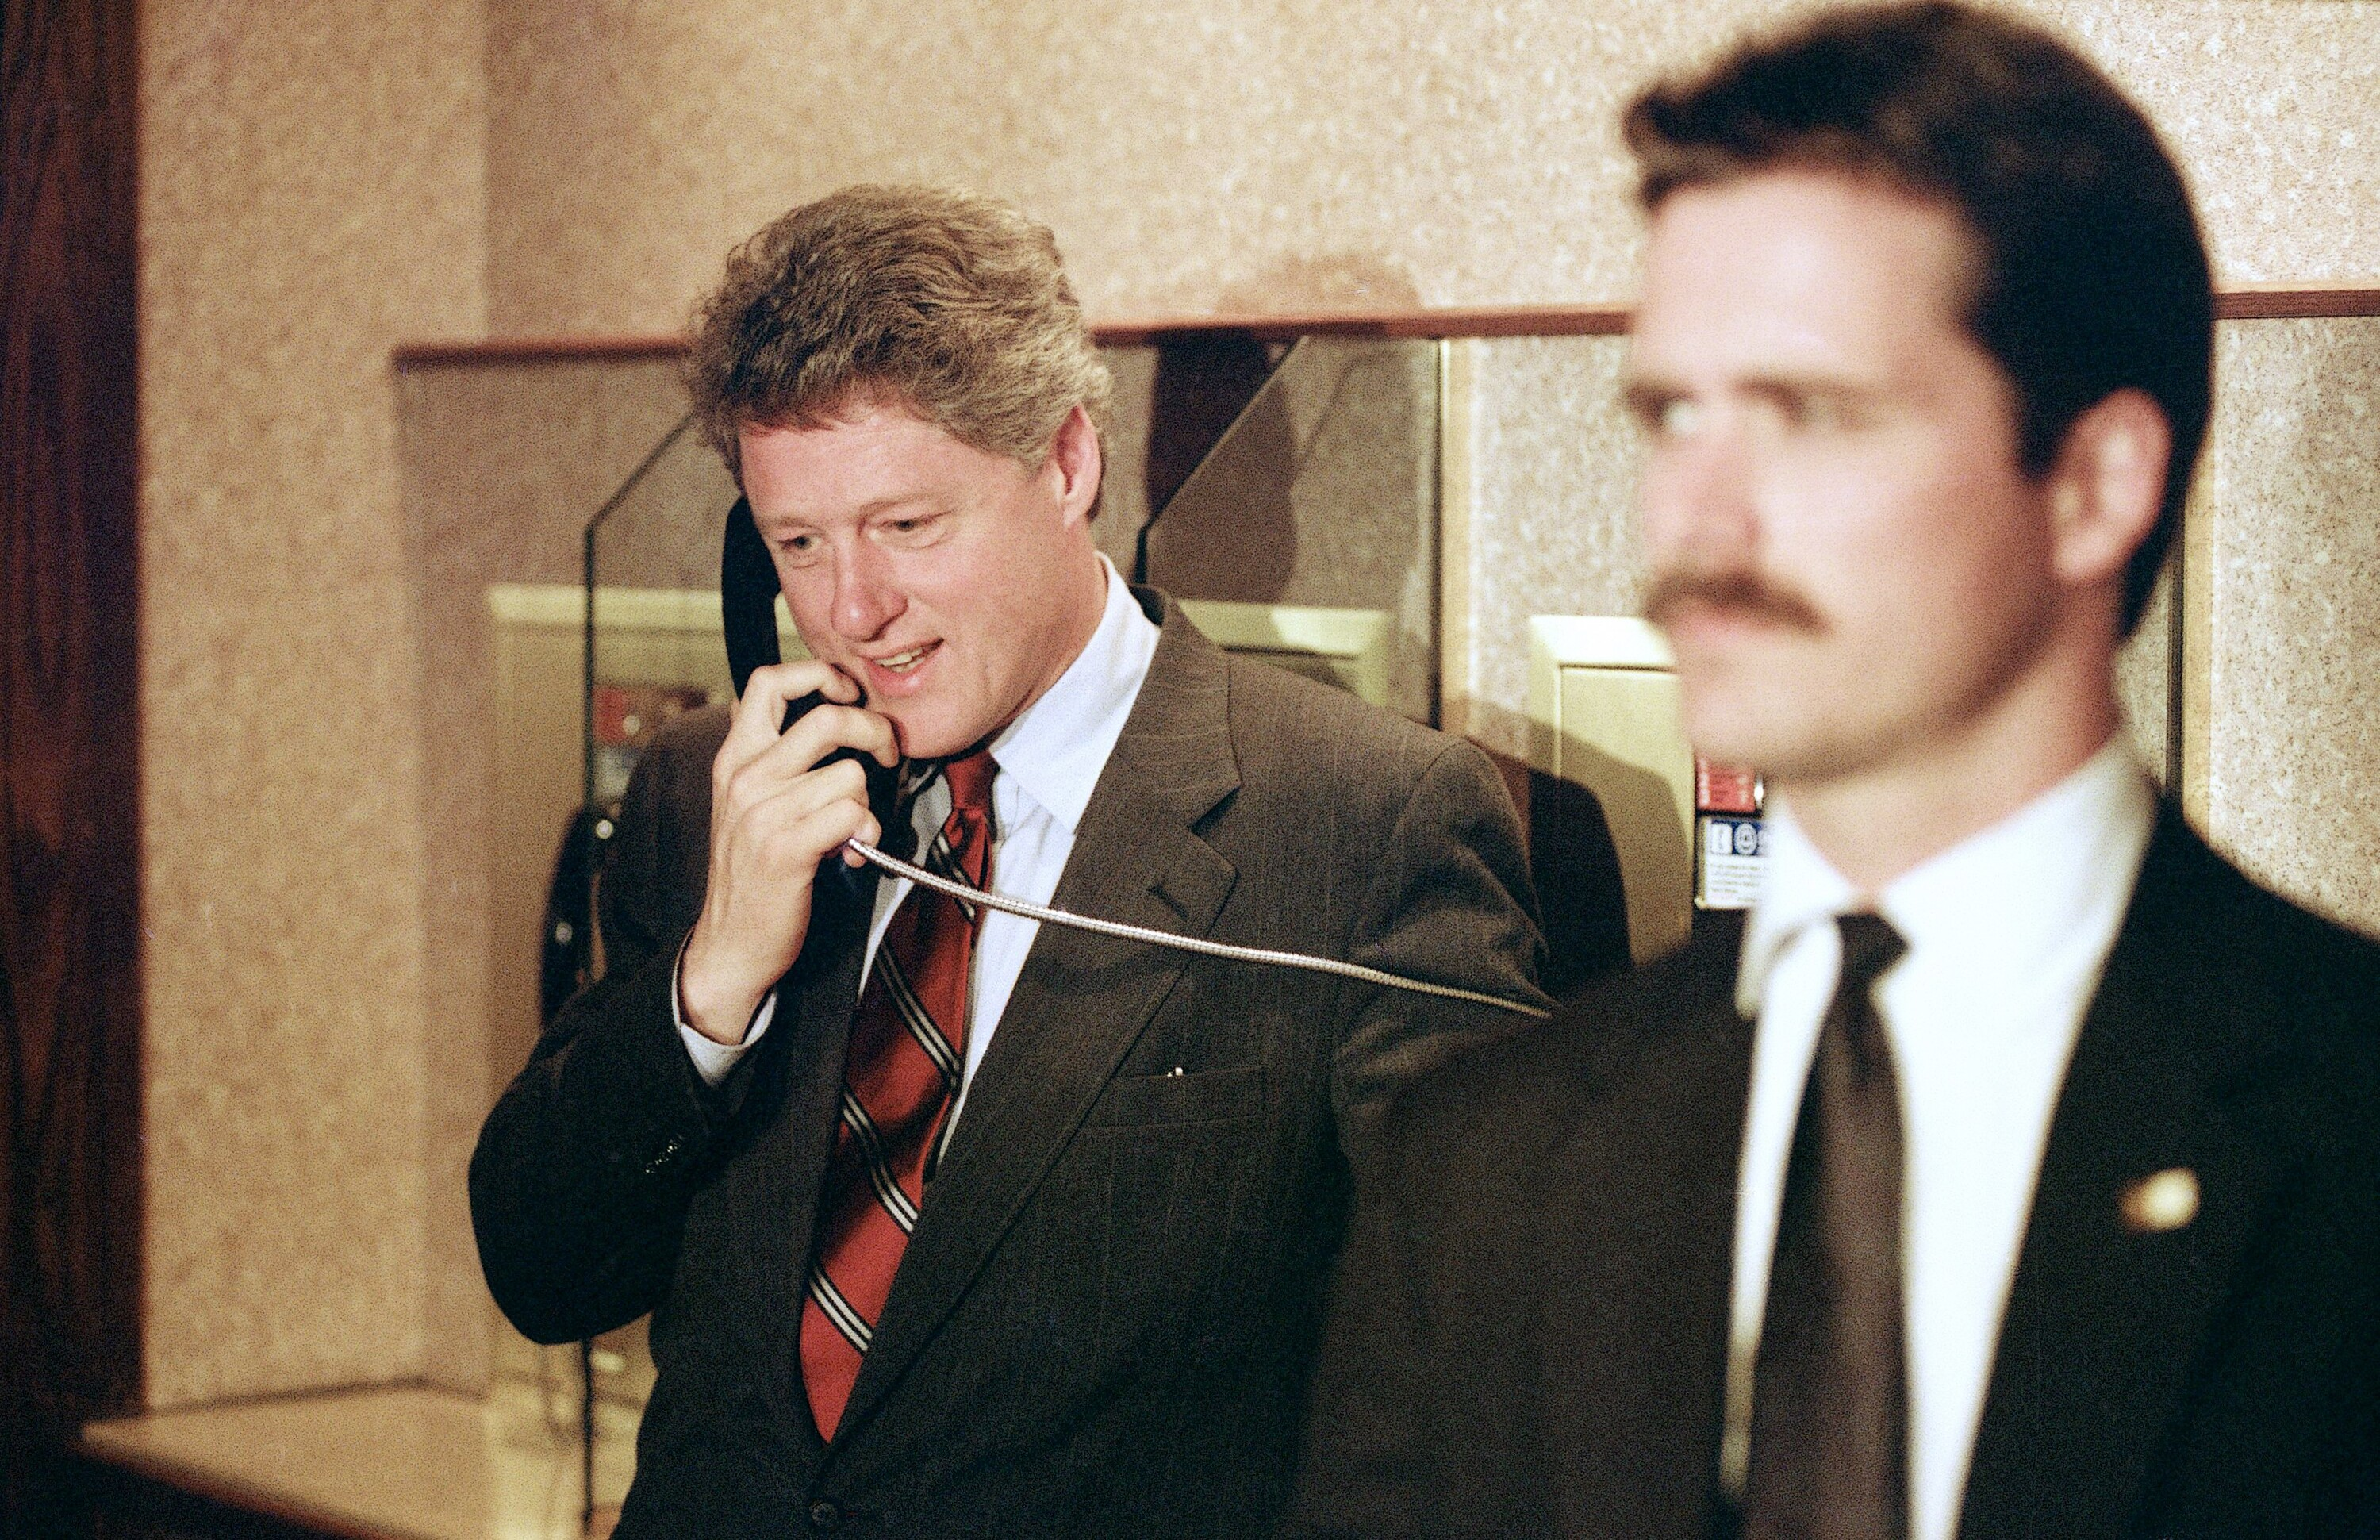 Book: Clinton took secret trips outside White House to visit girlfriends